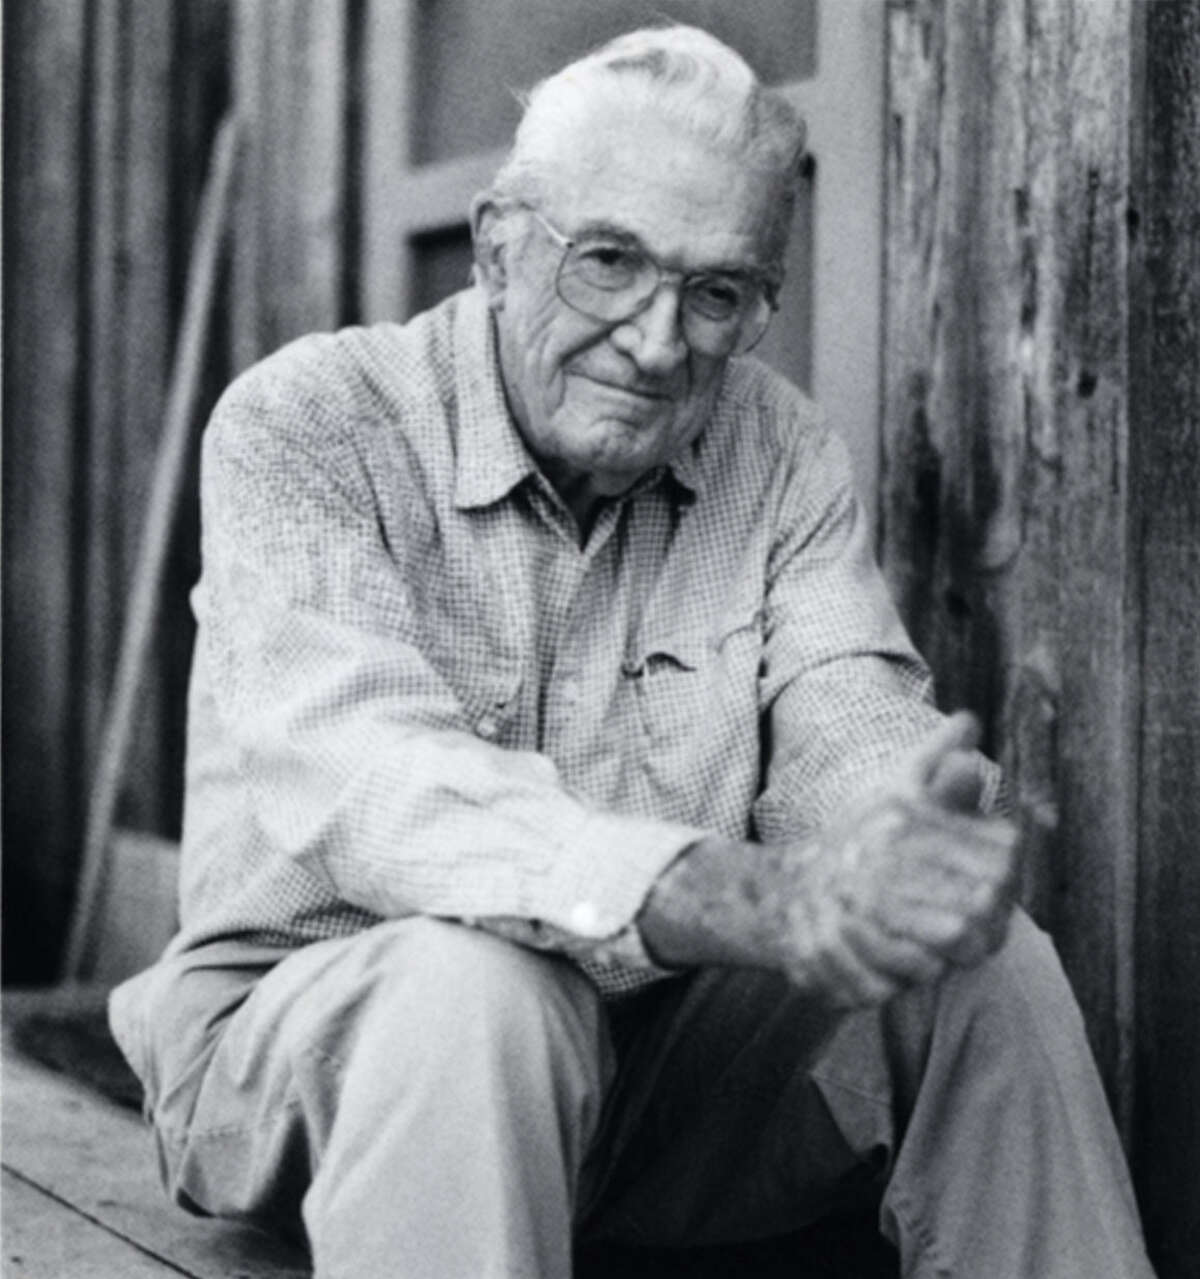 John Graves, a Texas writer whose book about a canoe trip down the Brazos River in the late 1950s, is regarded as a classic, died on July 30 at Hard Scrabble, his small farm outside Glen Rose